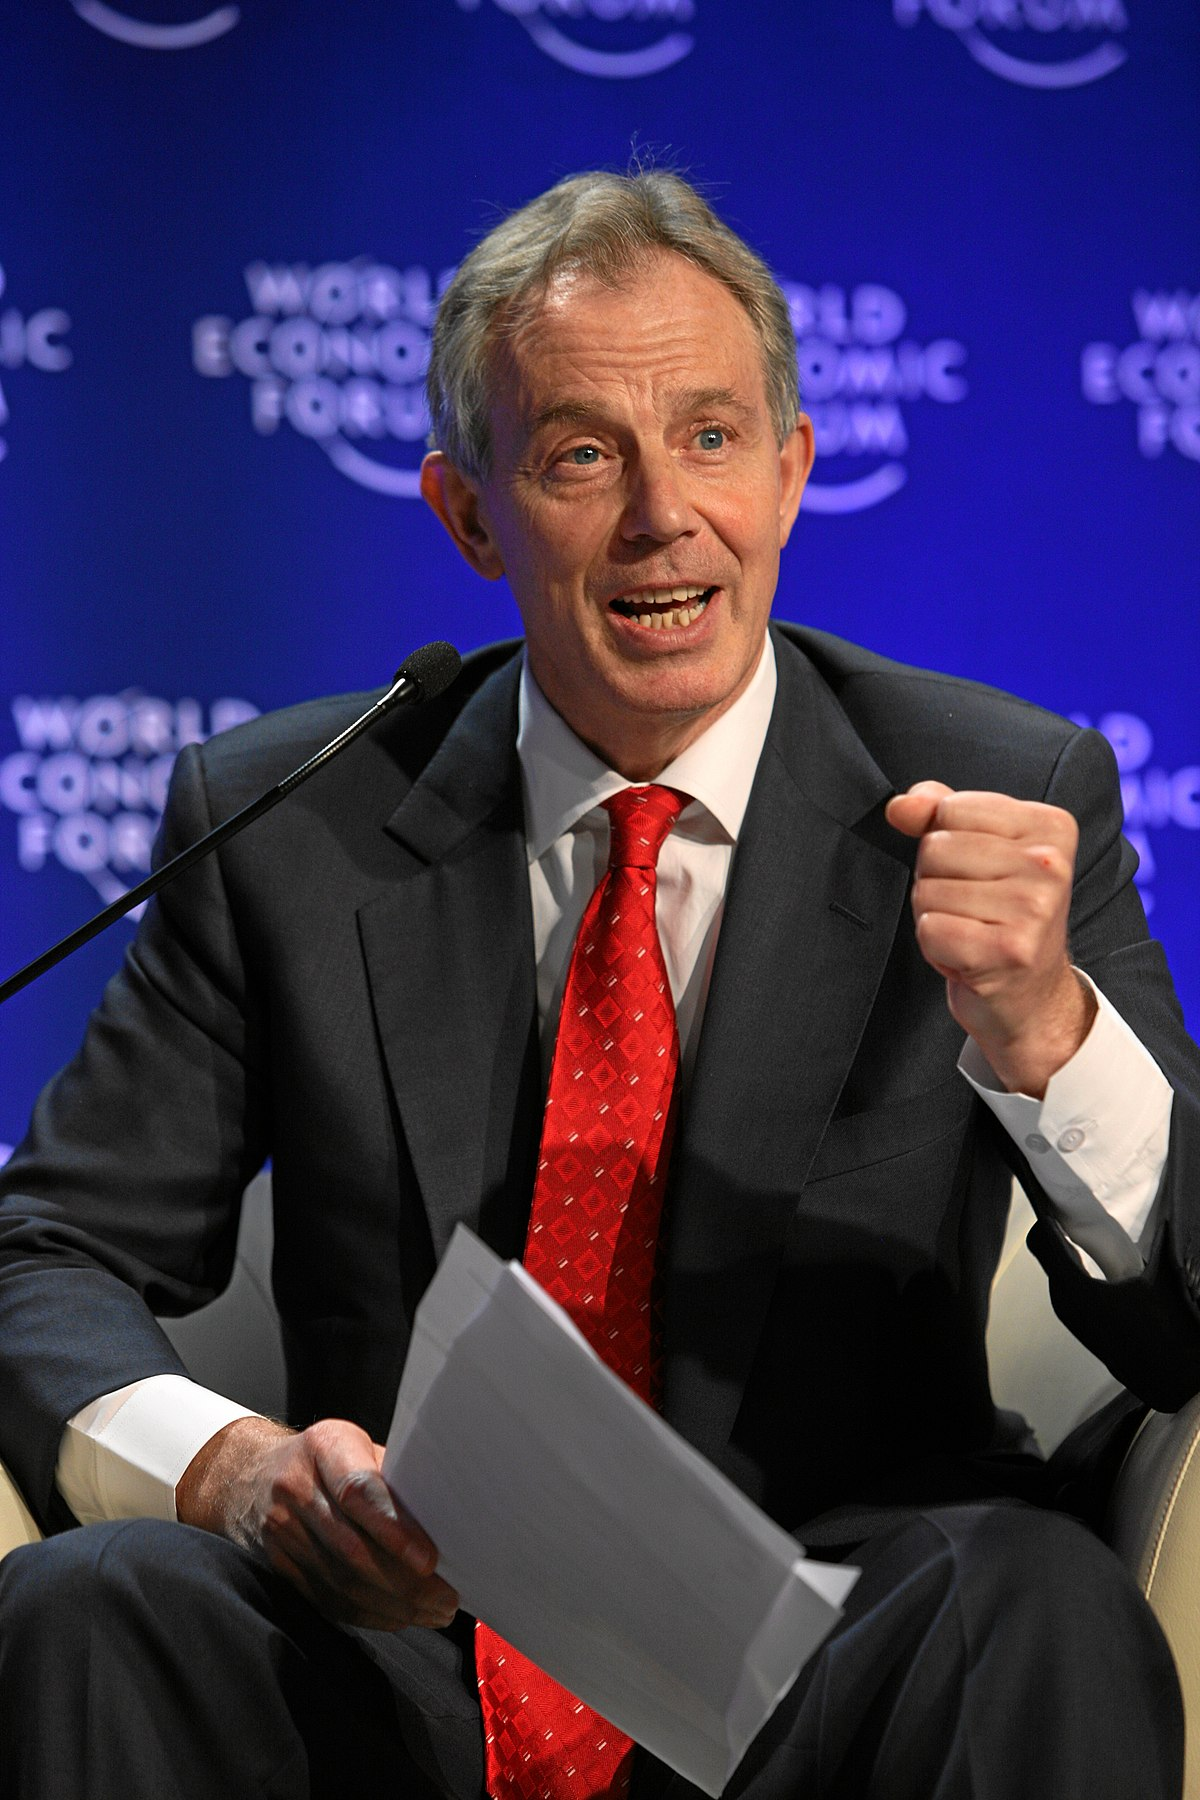 tony blair - photo #26